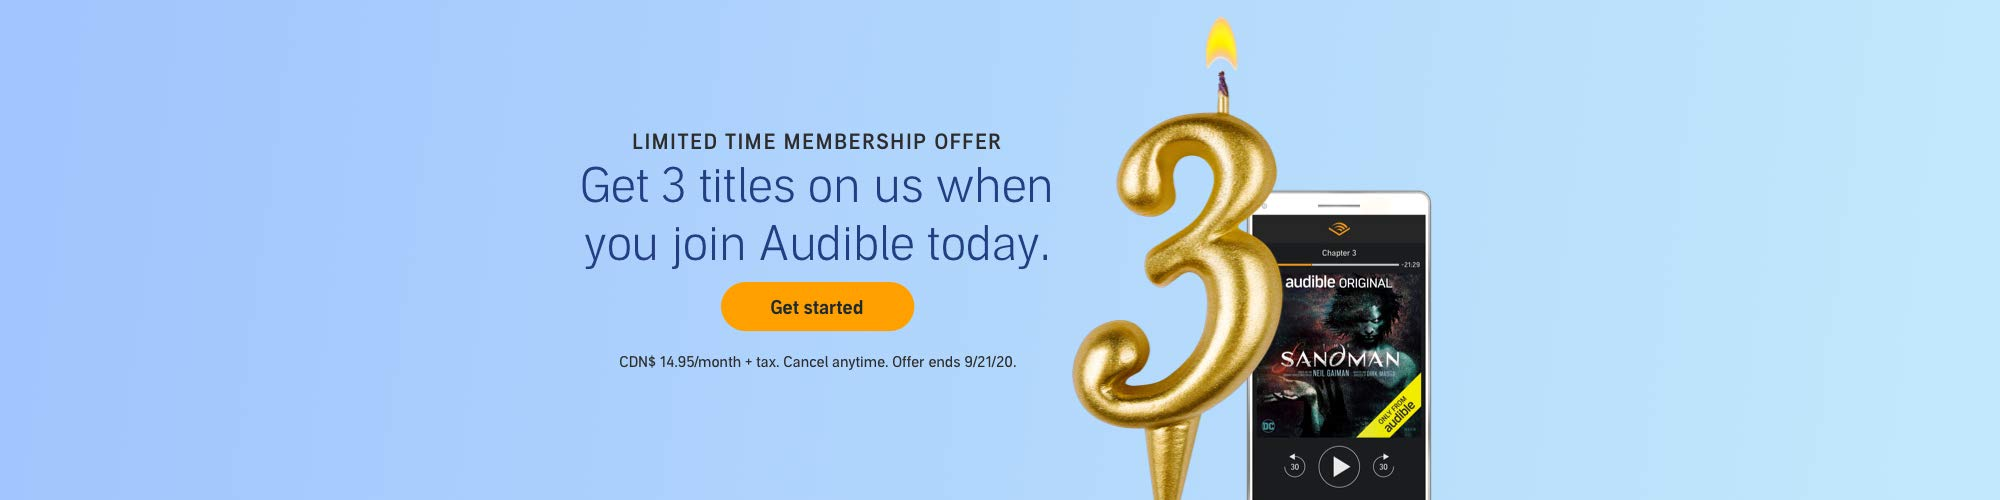 Limited time membership offer. Get 3 titles on us when you join Audible today.